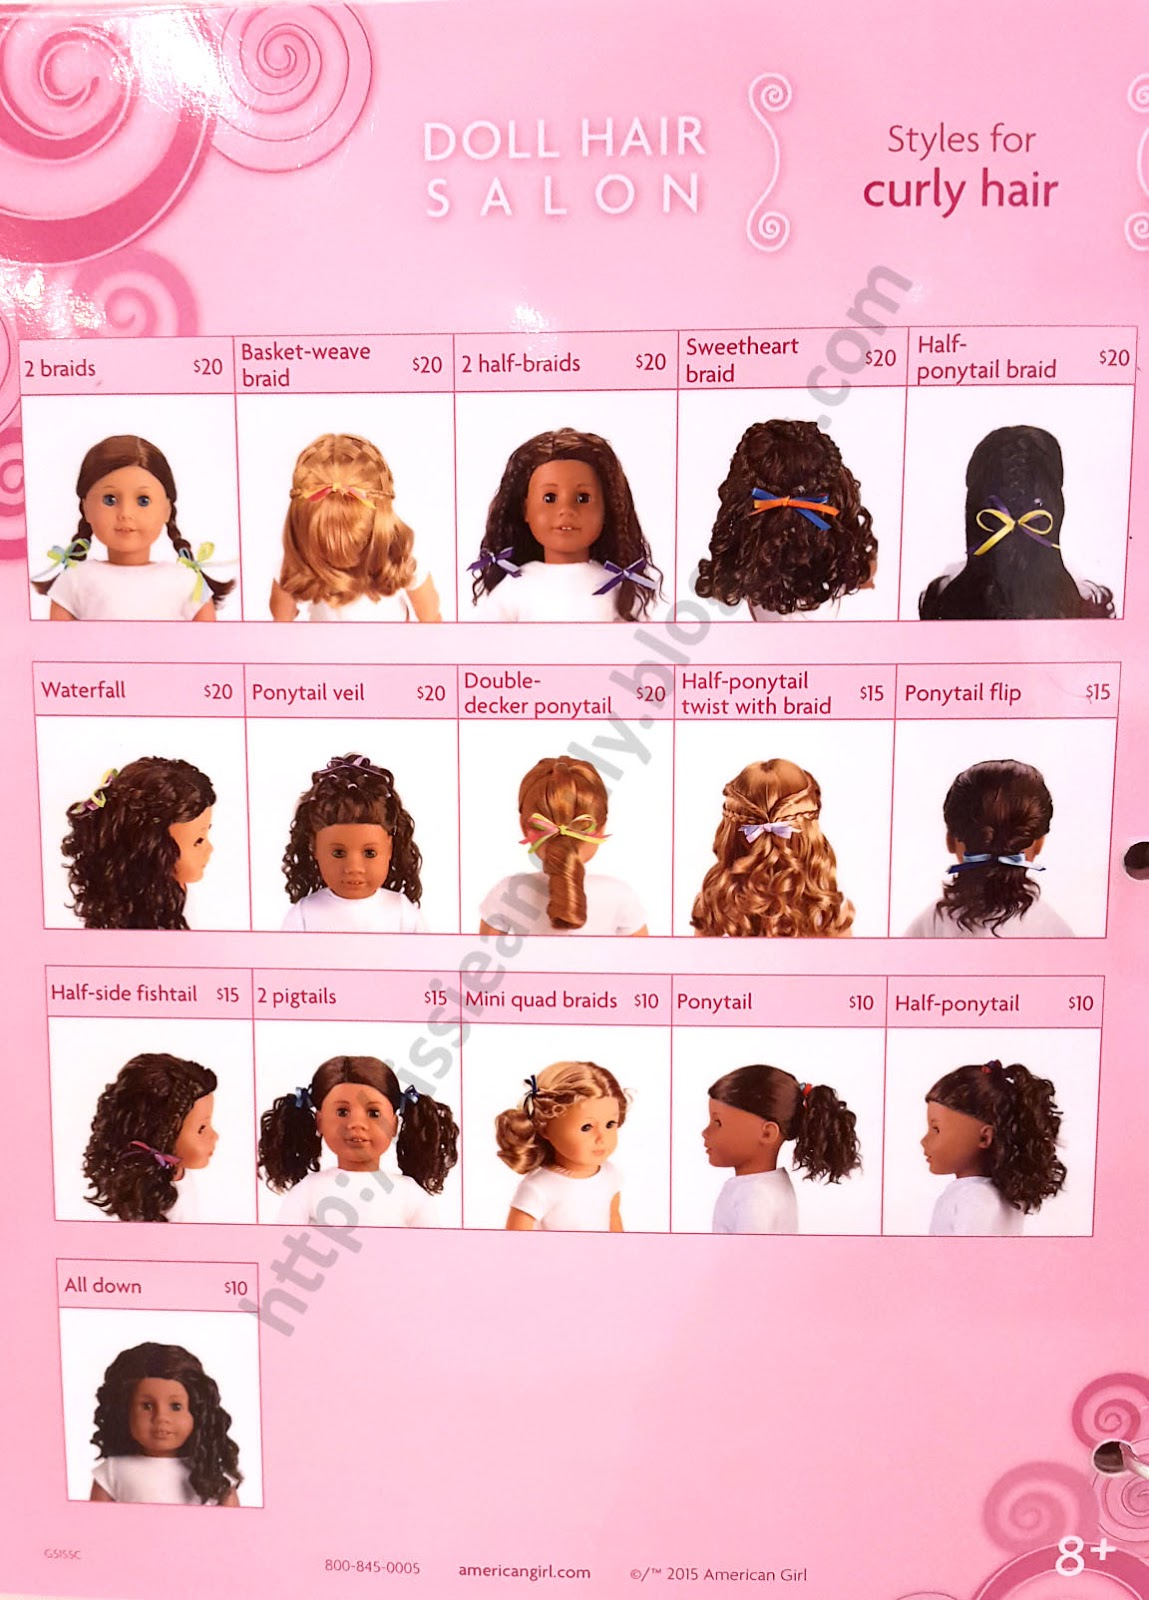 hd wallpapers hairstyles for our generation dolls nmr.earecom.press